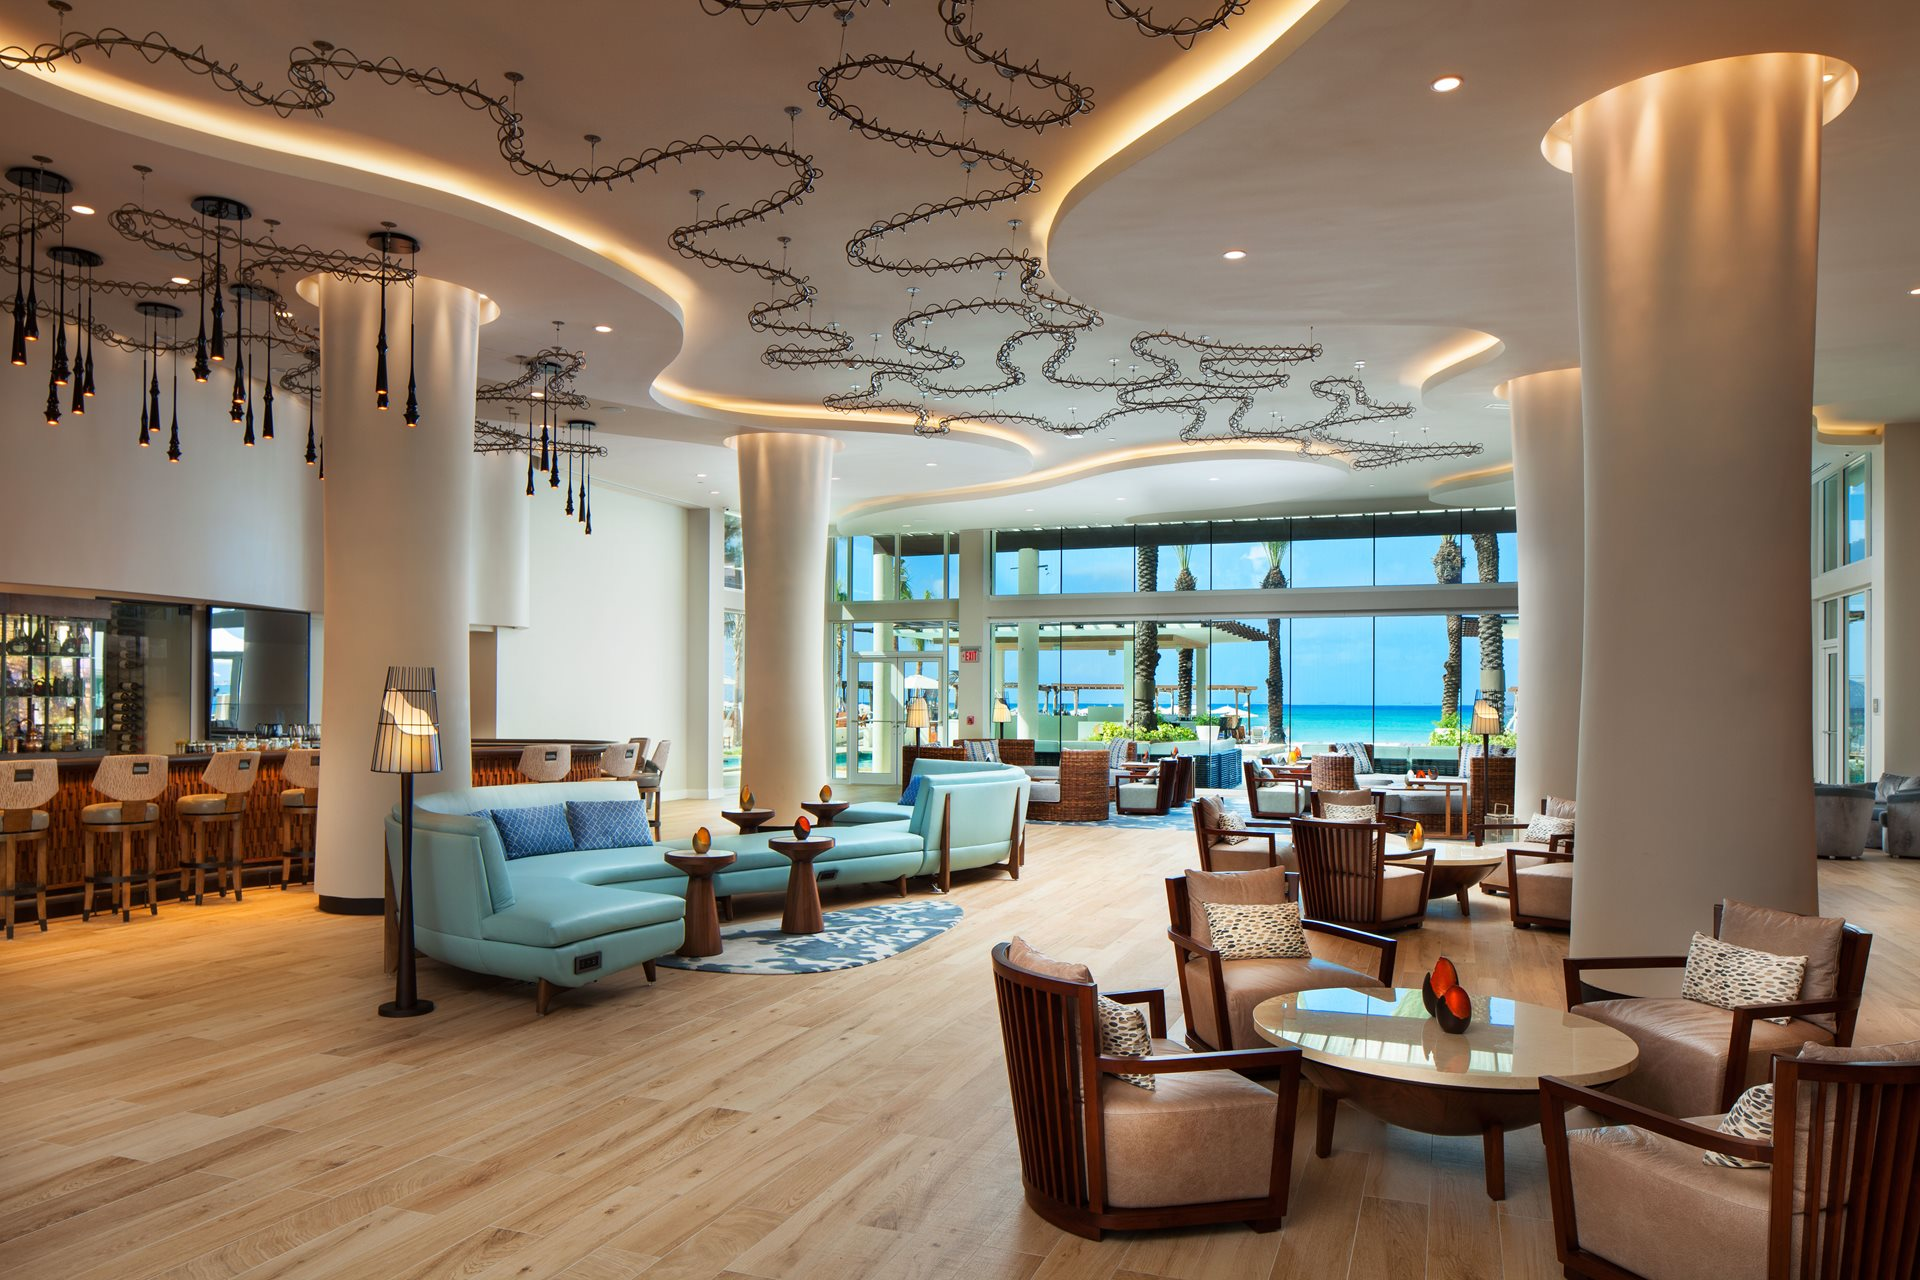 Westin's ocean front resort offers fine dining, diving opportunities, yoga classes, and more.